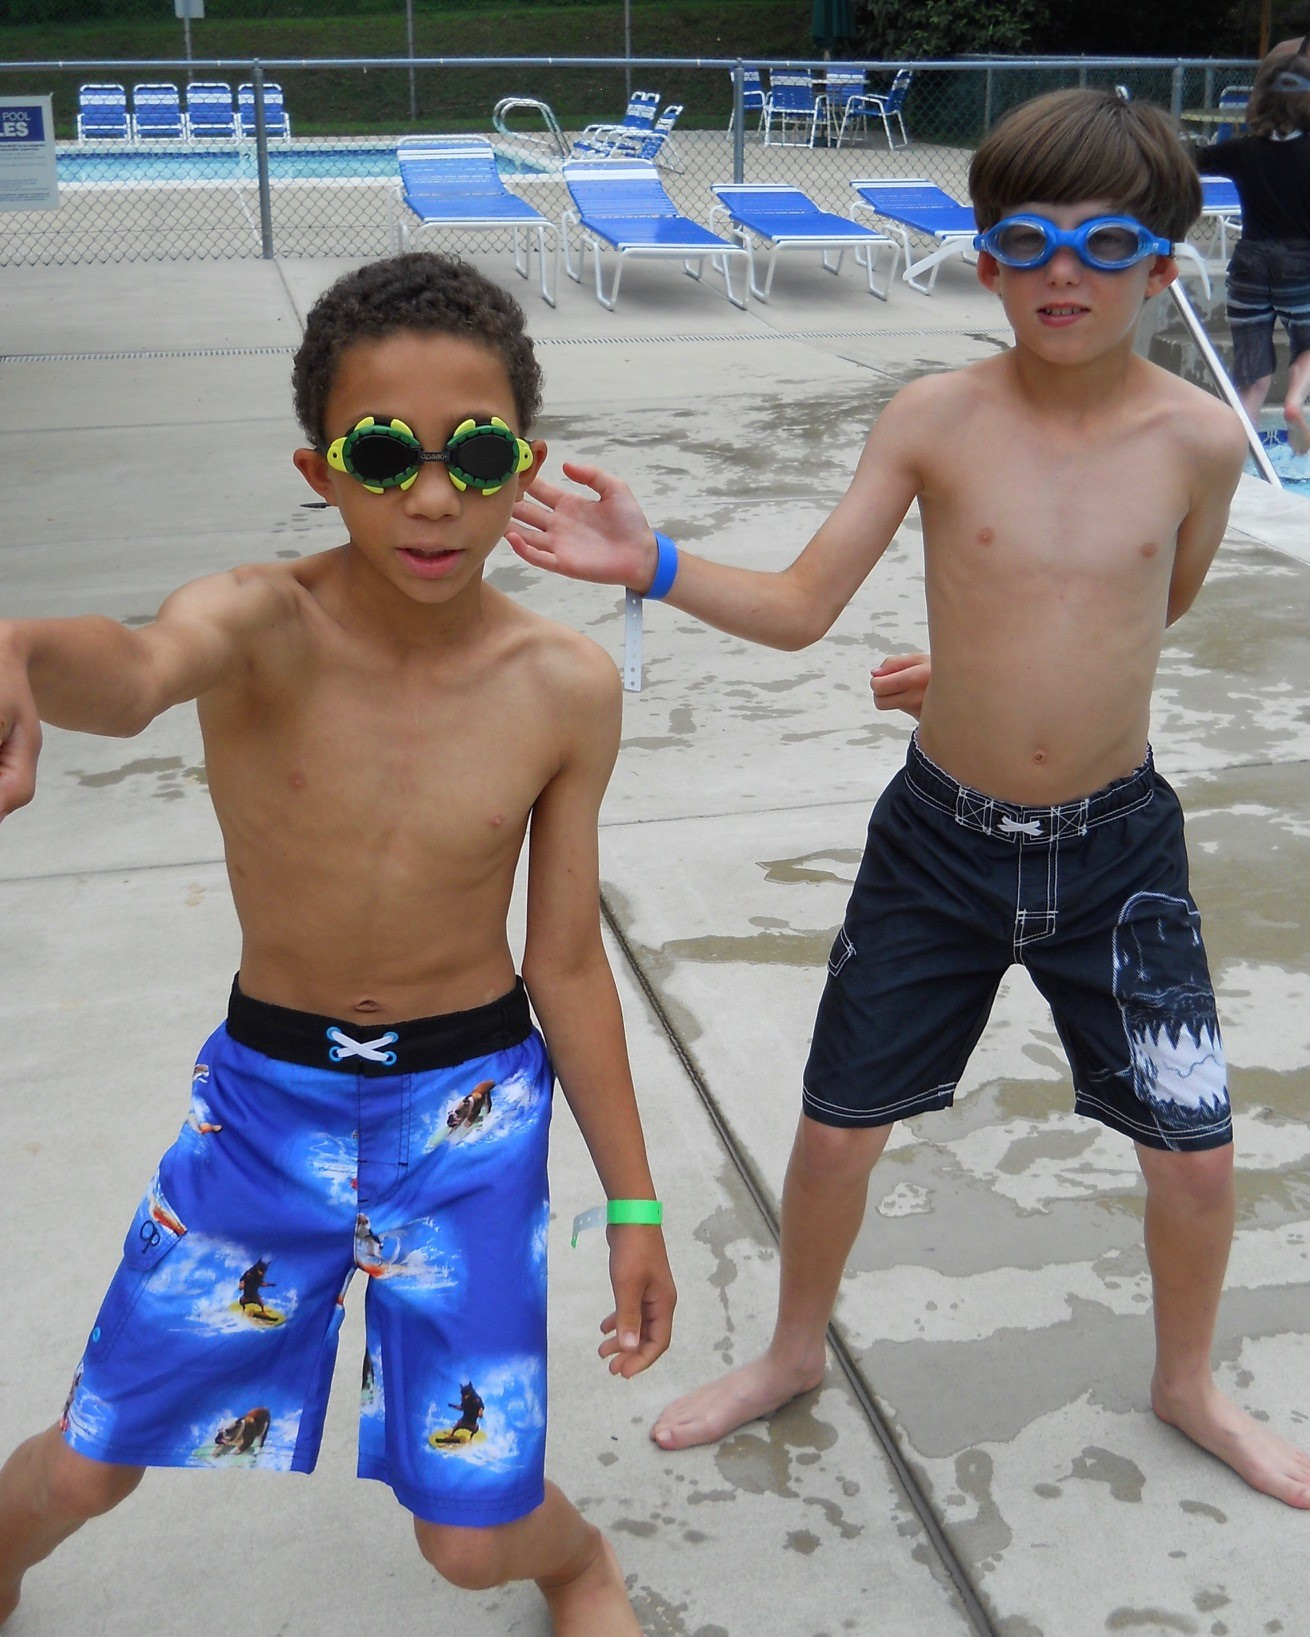 two boys dance wearing sunglasses at the pool